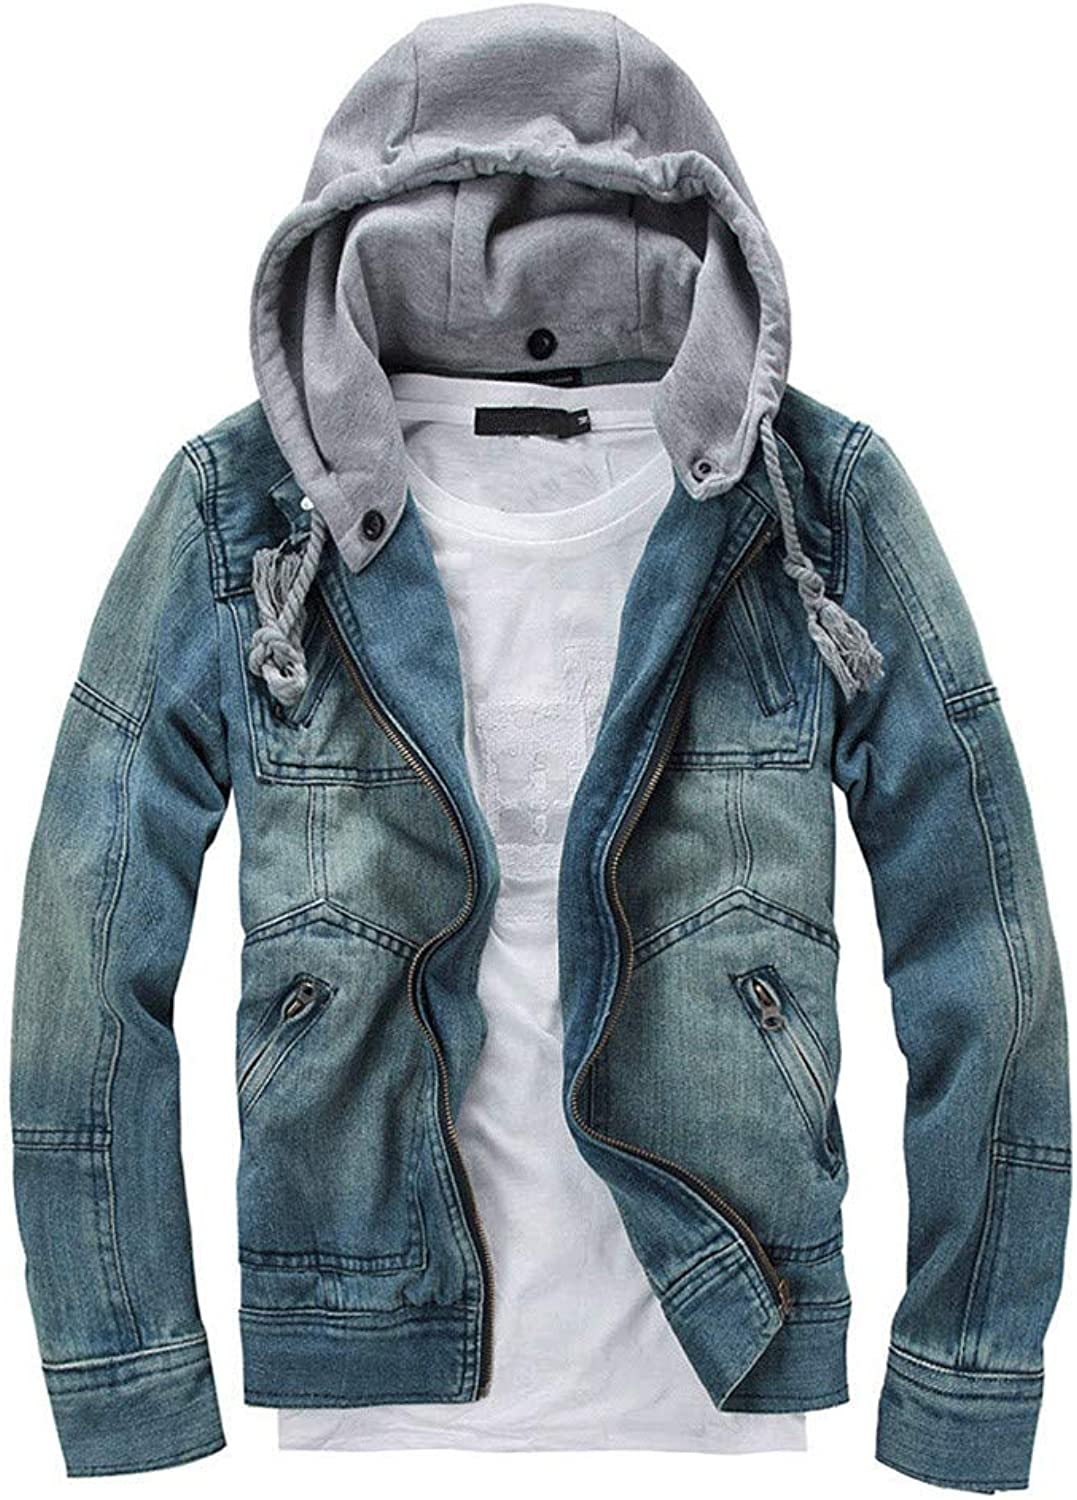 WaiiMak Big Men's Autumn Winter Denim Long Sleeve Detachable Hoodie Jacket Coat Top Blouse